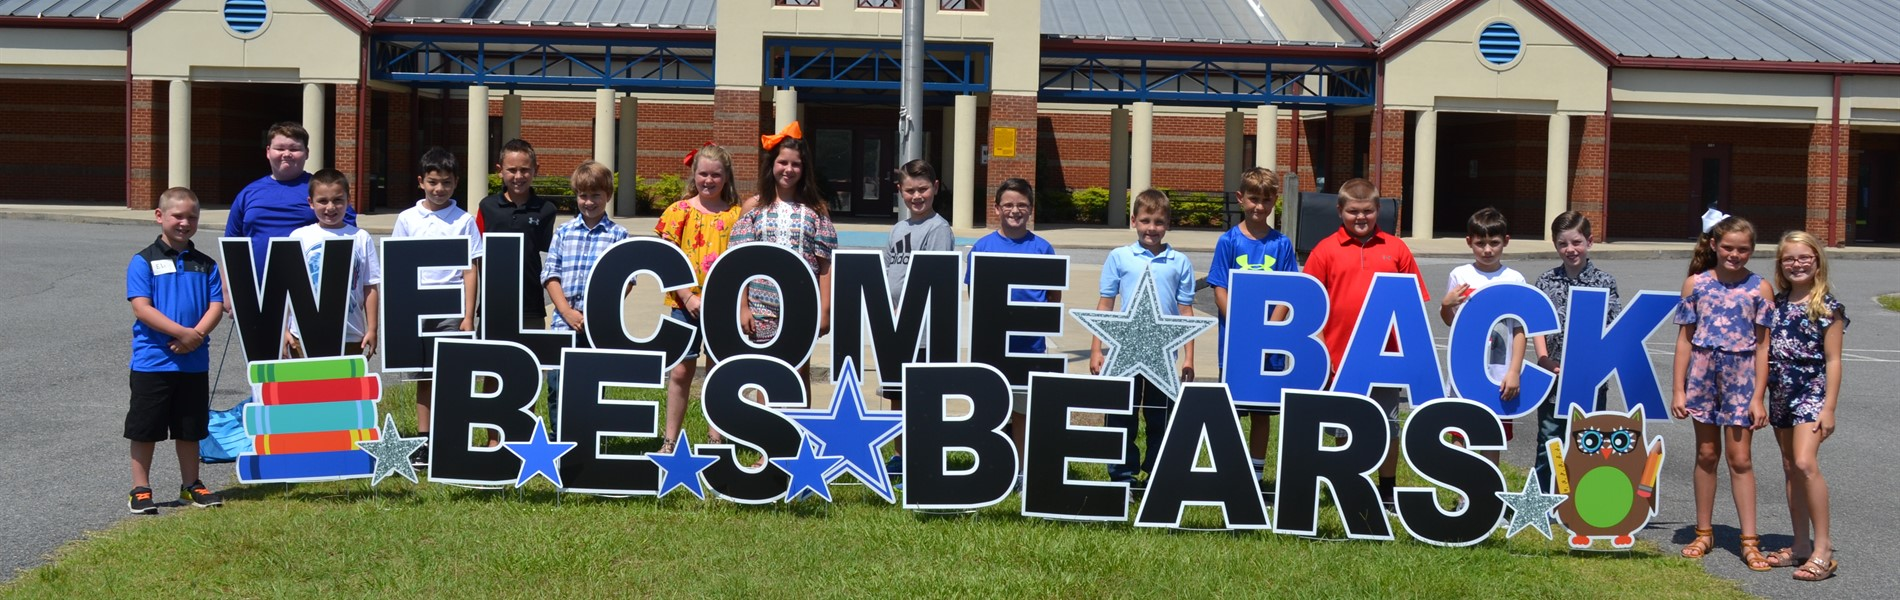 4th graders with welcome back sign